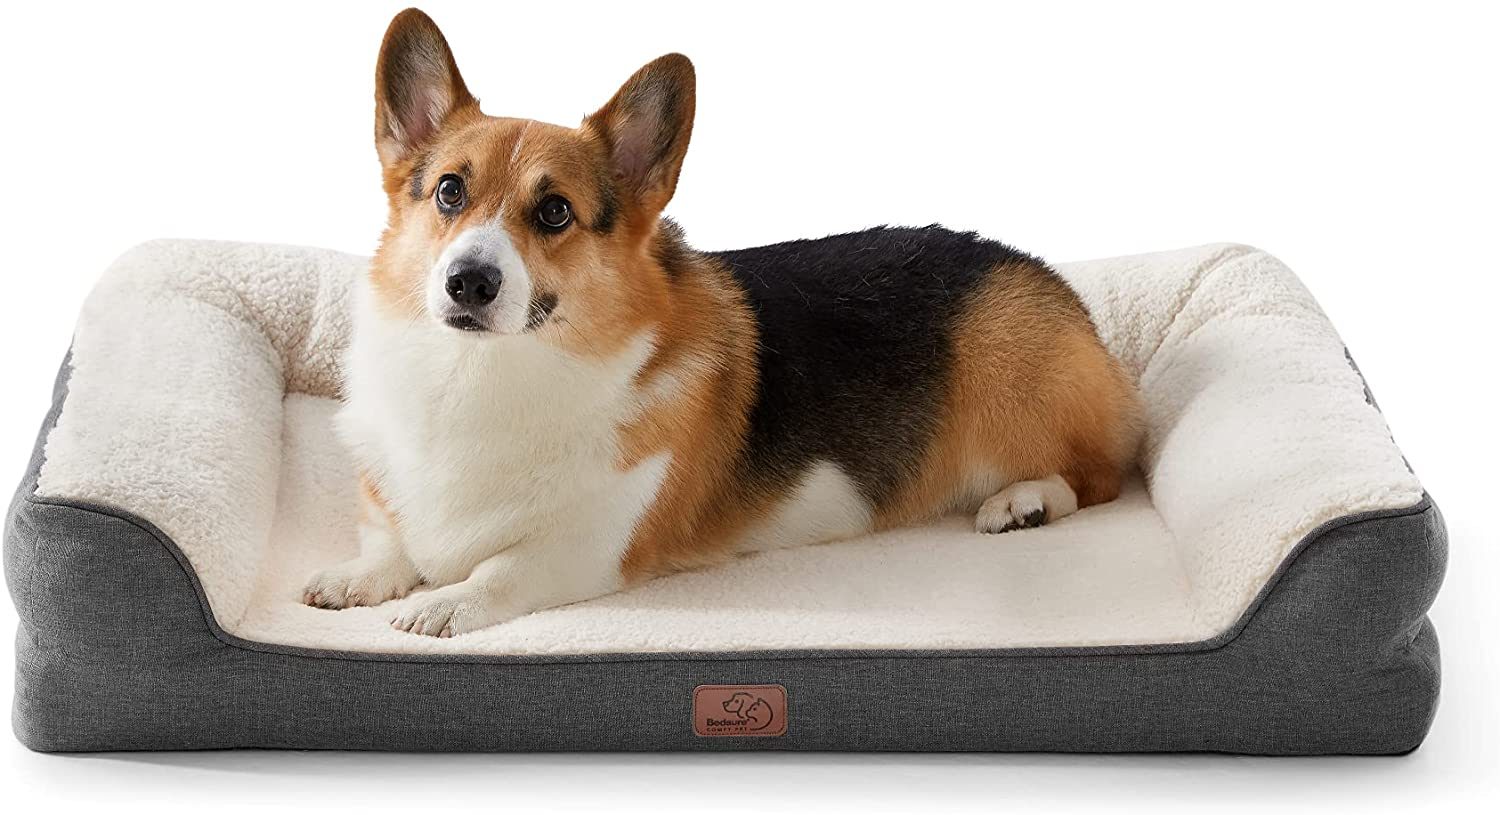 Amazon Choice Pet Beds for Cool Weather get Enthusiastic Reviews from Customers